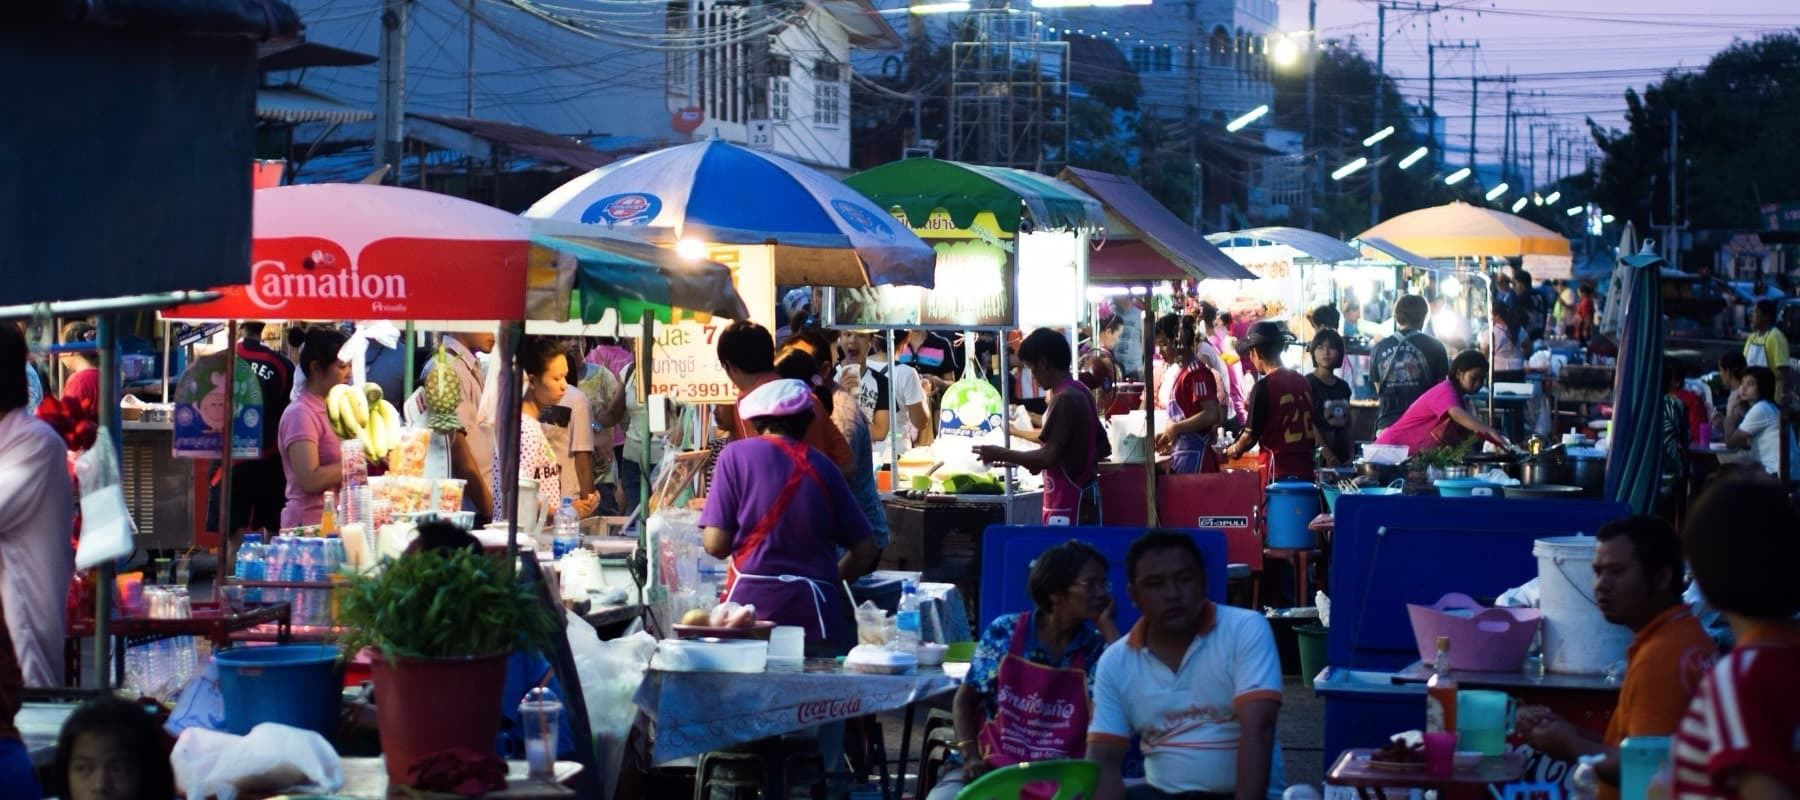 The Social Impact of Street Food